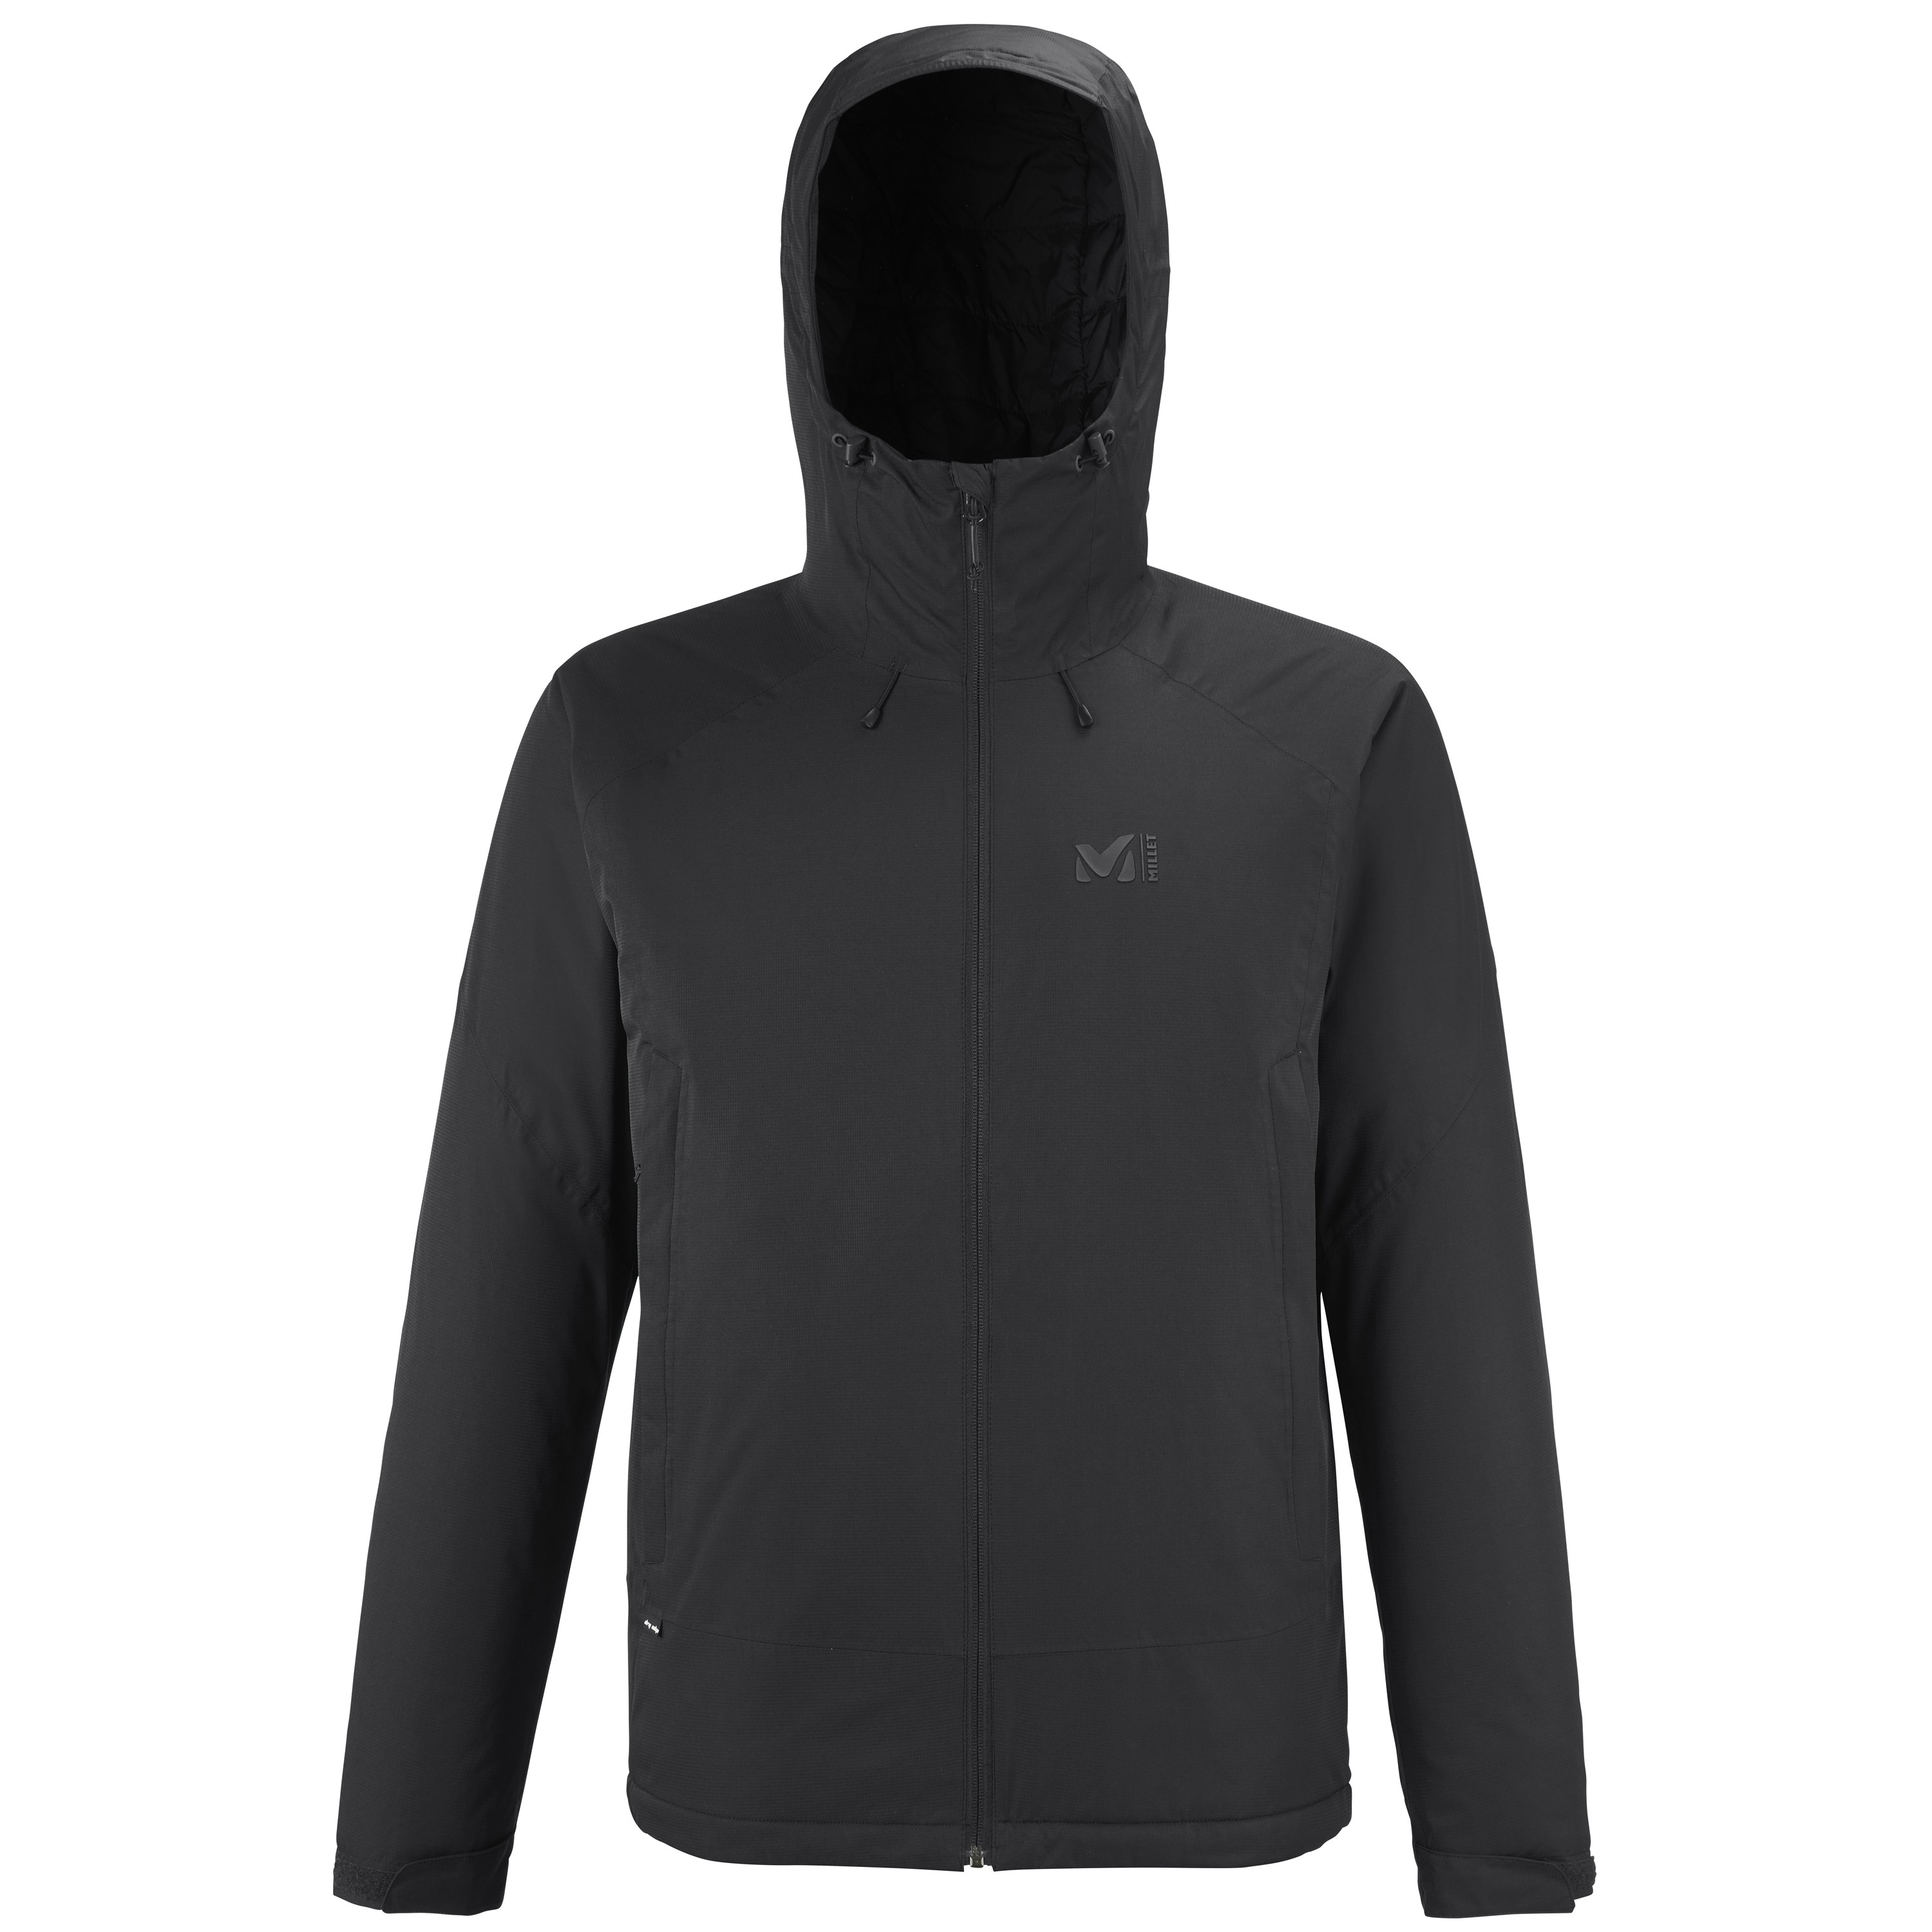 FITZ ROY INSULATED JACKET M